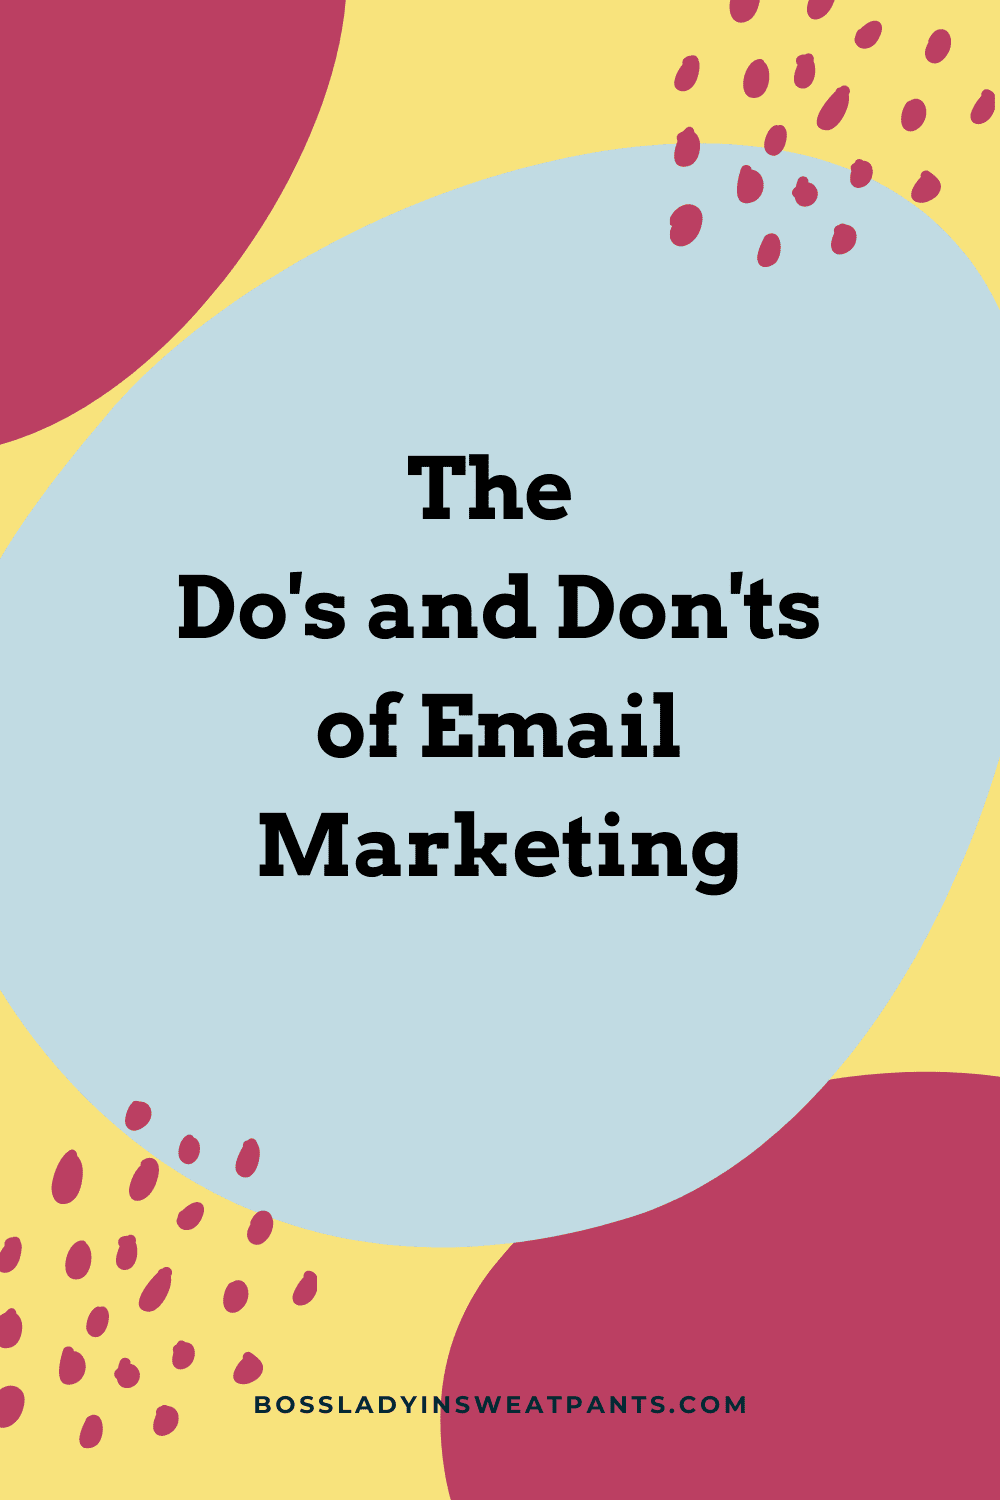 """Multicolored background composed of several rounded shapes with """"The Do's and Don'ts of Email Marketing"""" in the center. The url for the website bossladyinsweatpants.com is at the bottom centered horizontally. This is for the episode of the podcast Social Media for Mompreneurs titled """"Dopamine, Emojis and Email Marketing with Kate Doster"""" which is represented by the blog post titled """"Easily Write Effective Emails That Delight Your People Every Week"""""""